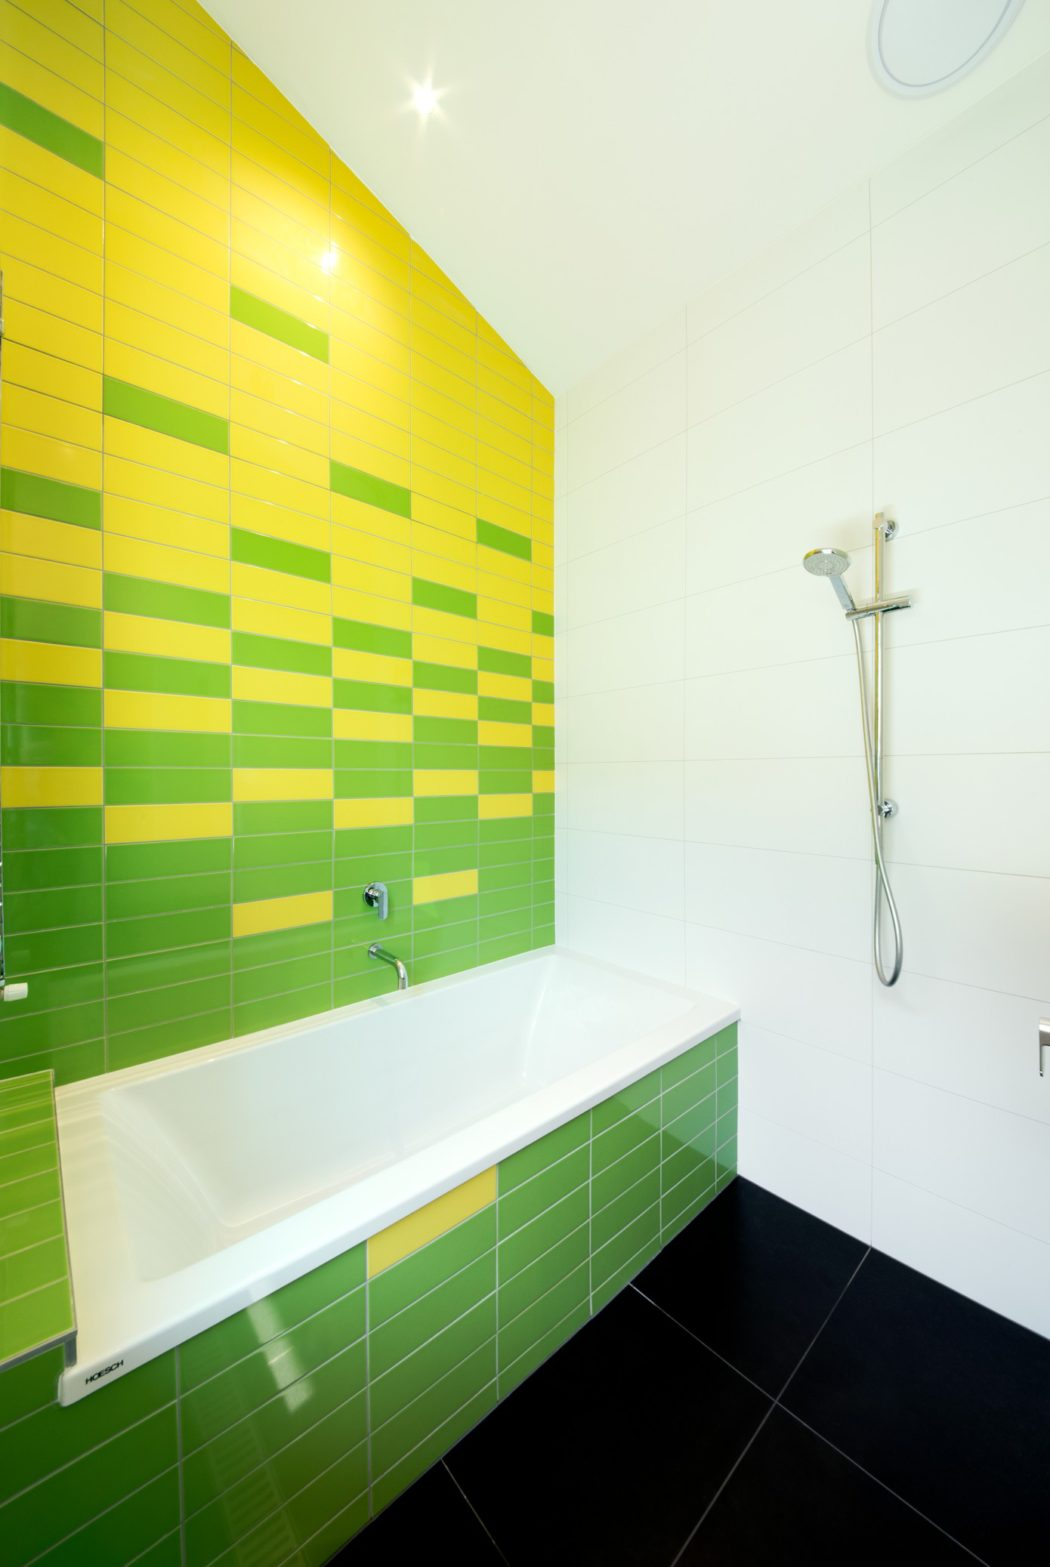 Northcote solar home by green sheep collective homeadore pin save email dailygadgetfo Choice Image